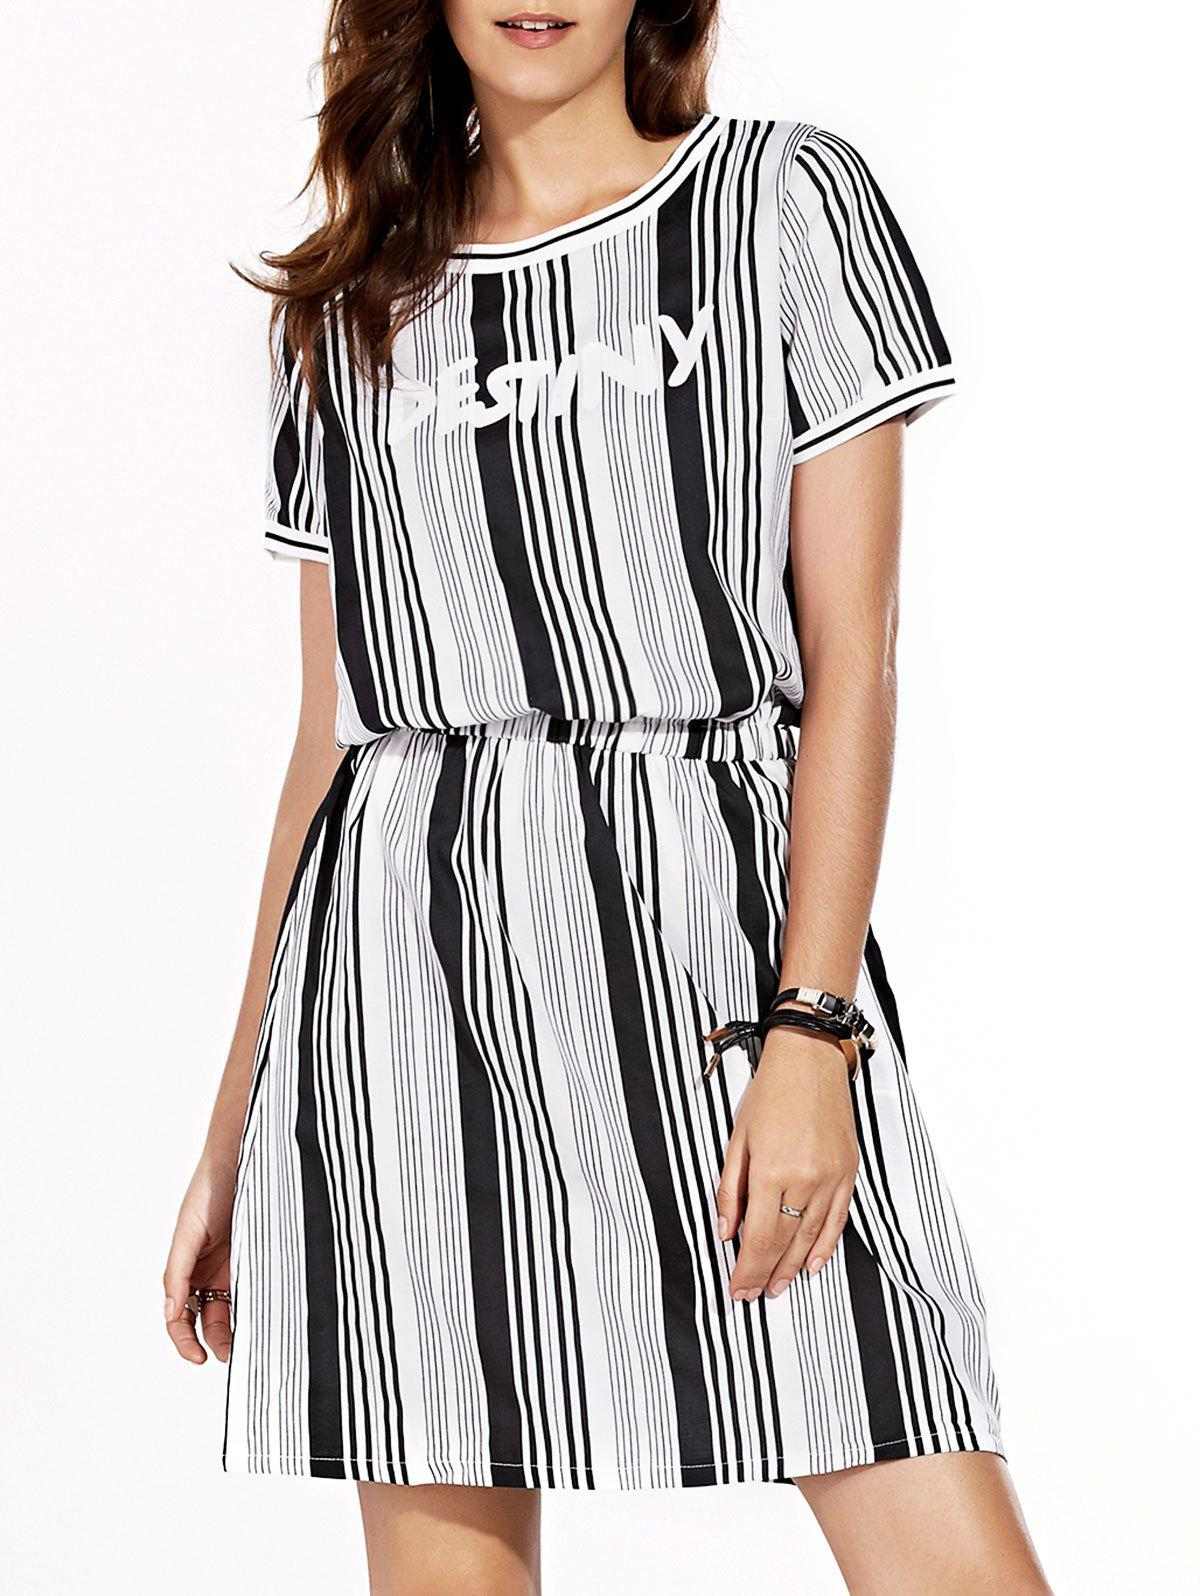 Casual Women's Jewel Neck Short Sleeve Striped A-Line Dress